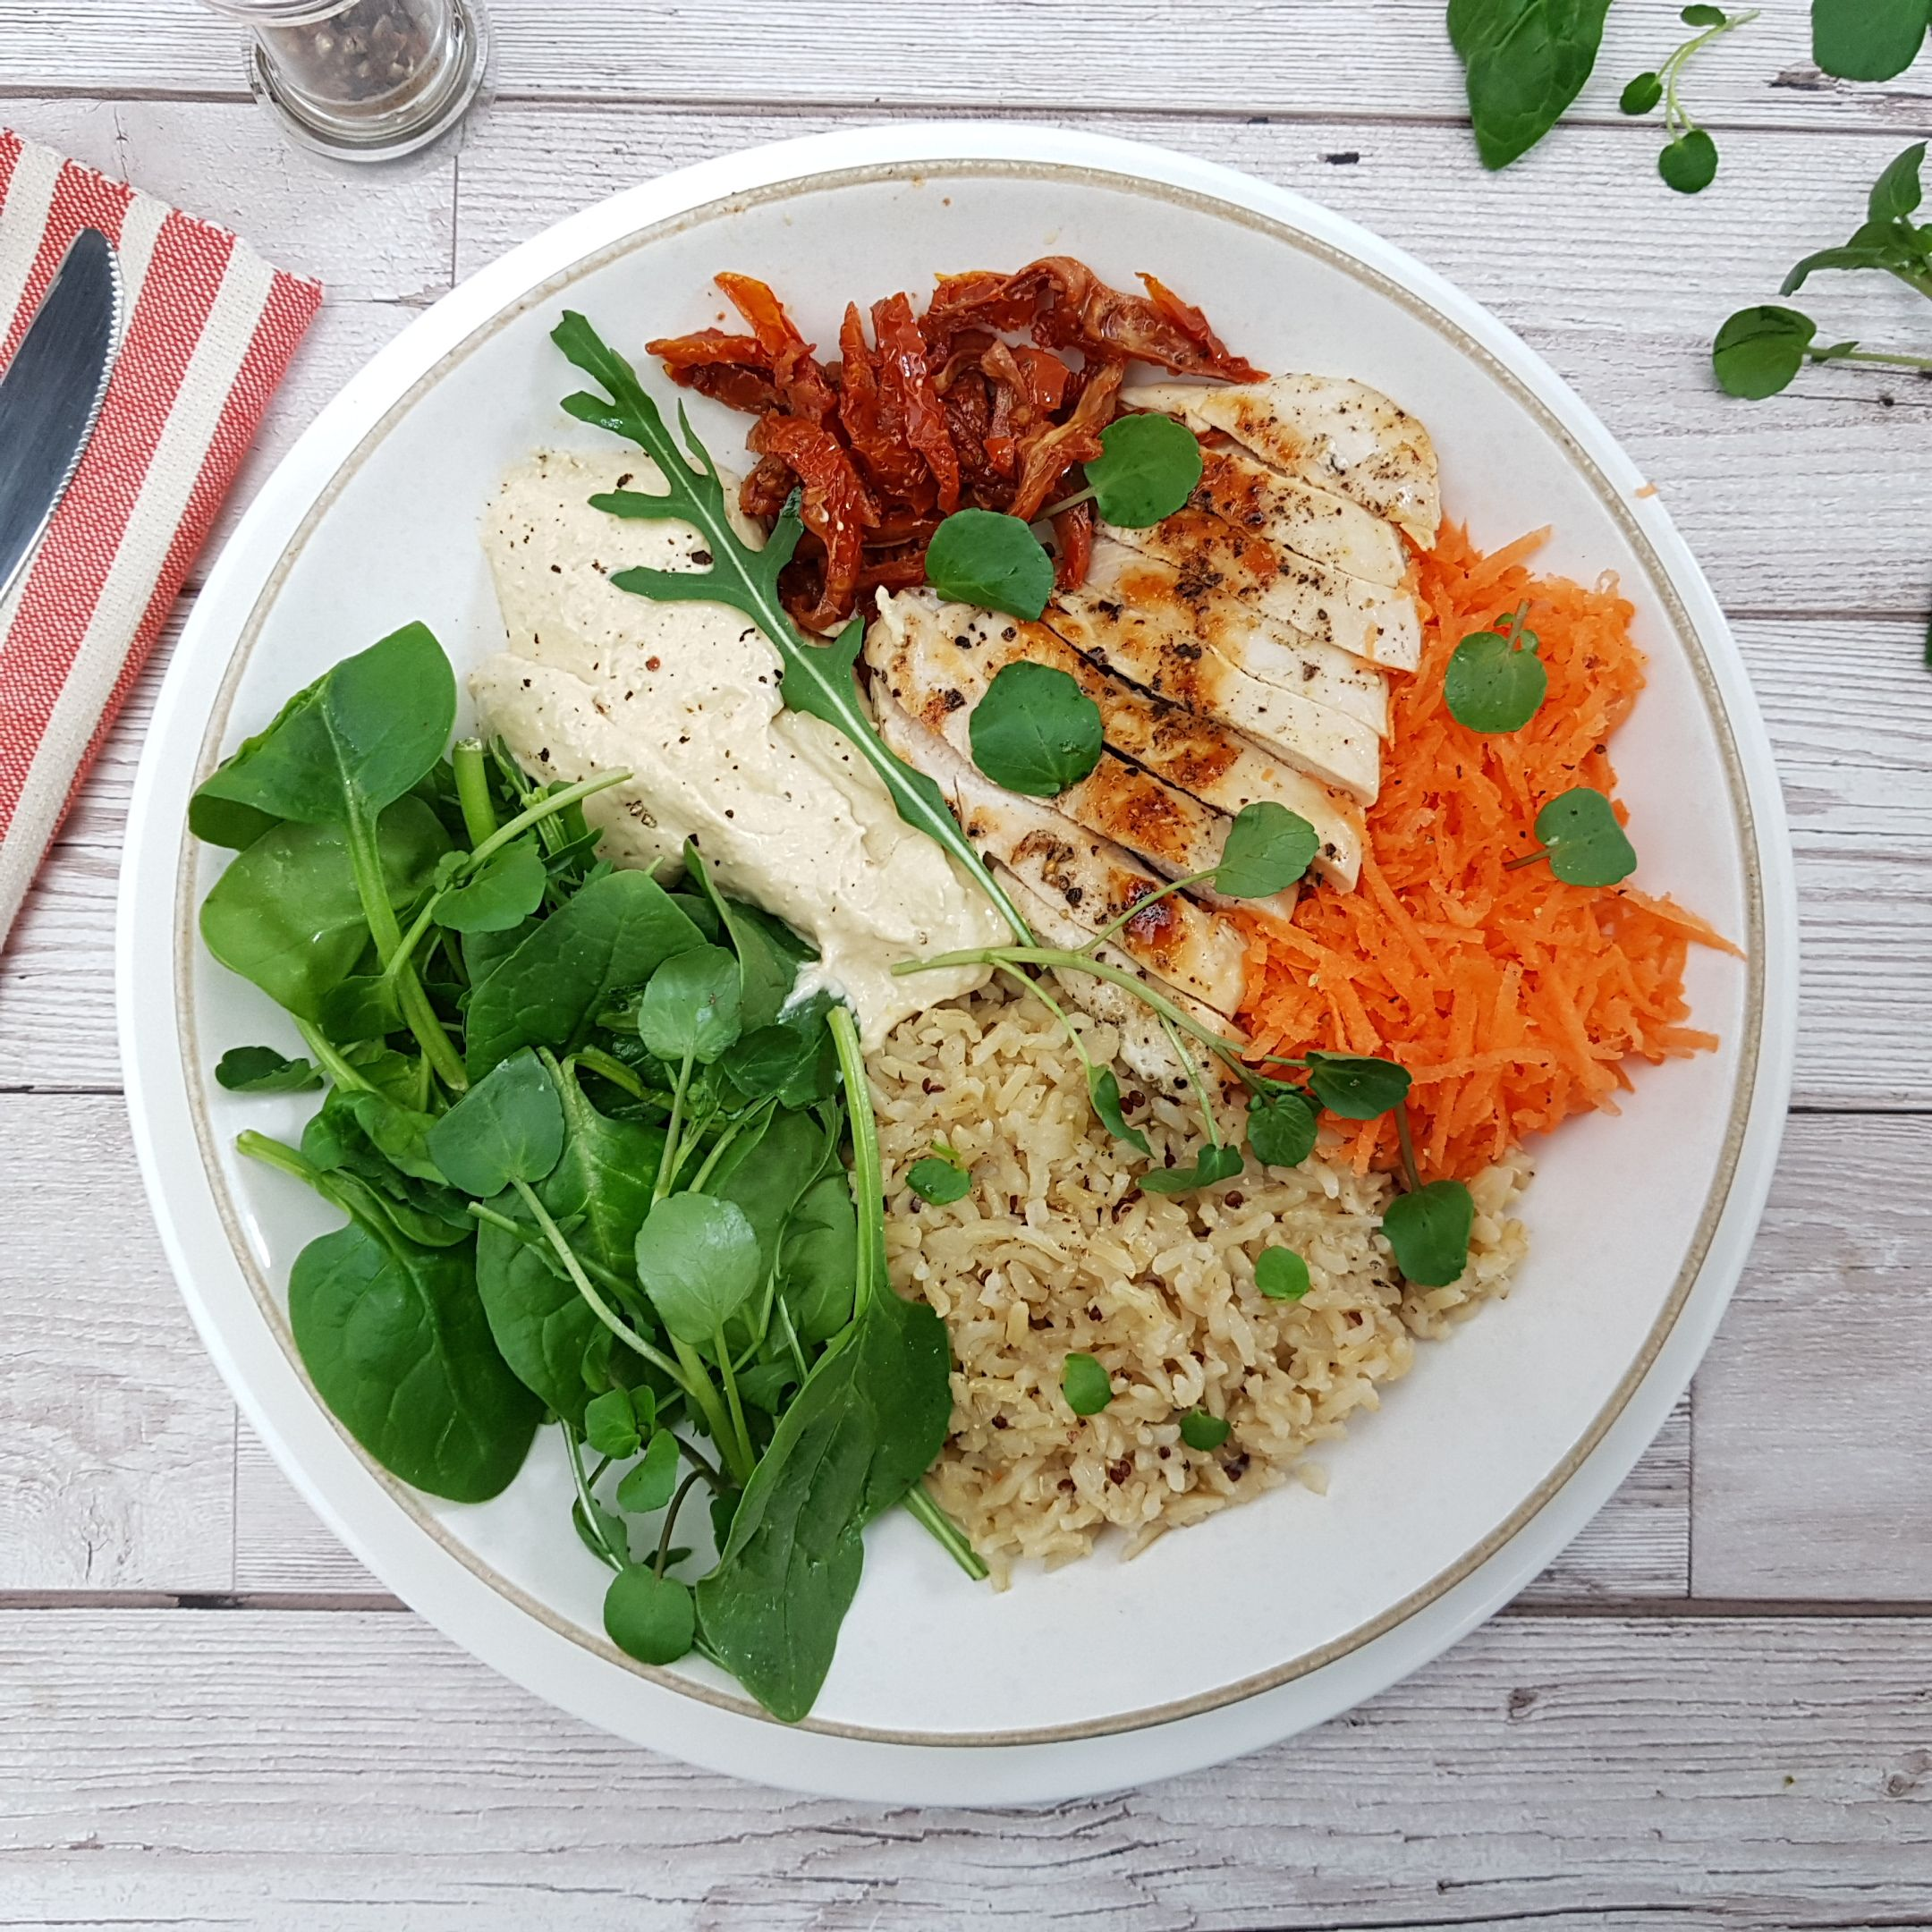 Slice the chicken breast and arrange the salad, rice, hummus, grated carrot and sundried tomatoes in two bowls